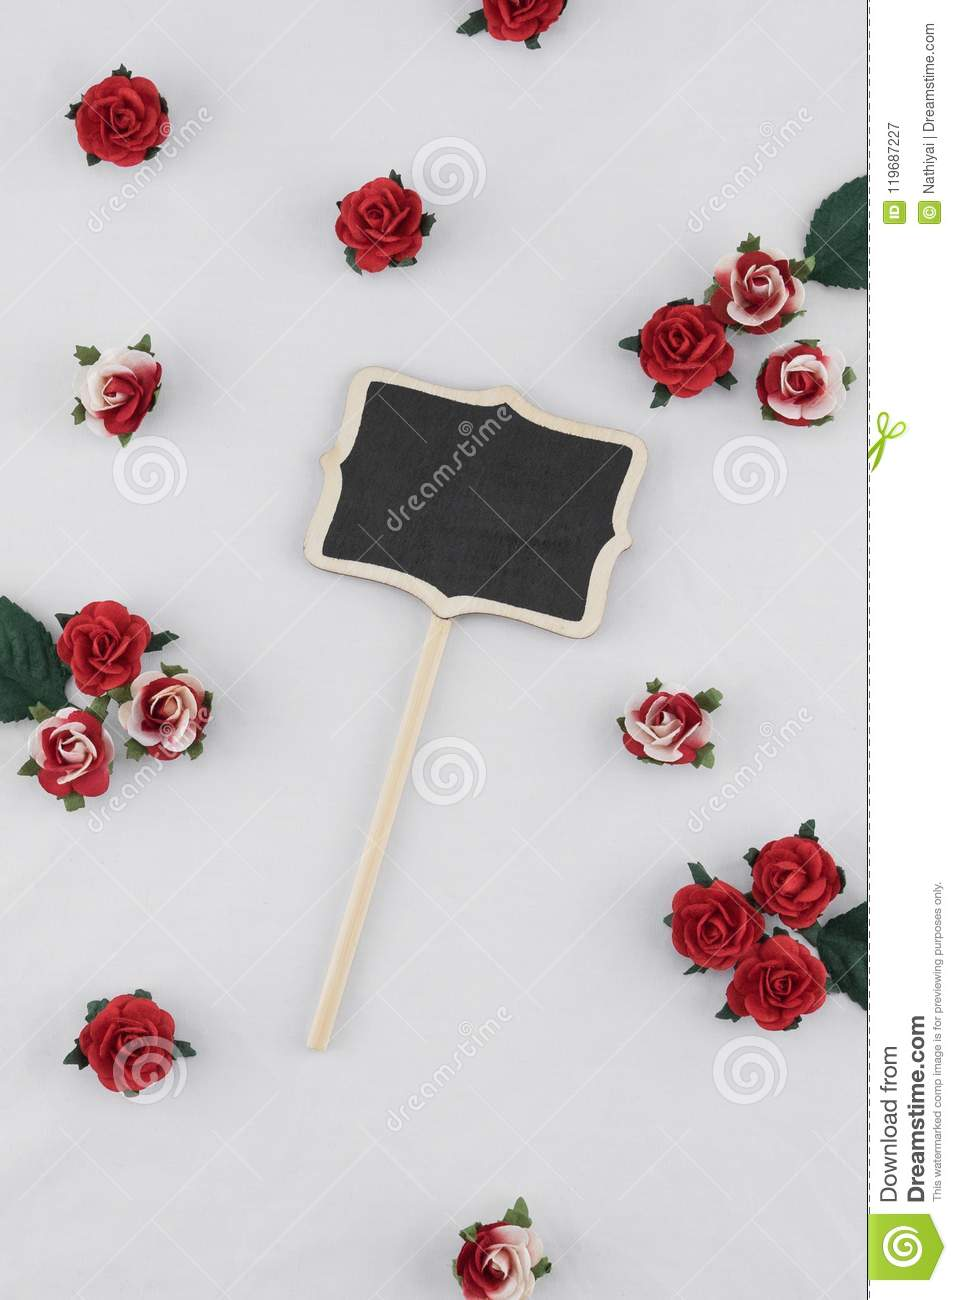 Small Blackboard Decorate With Red Rose Paper Flowers Stock Image